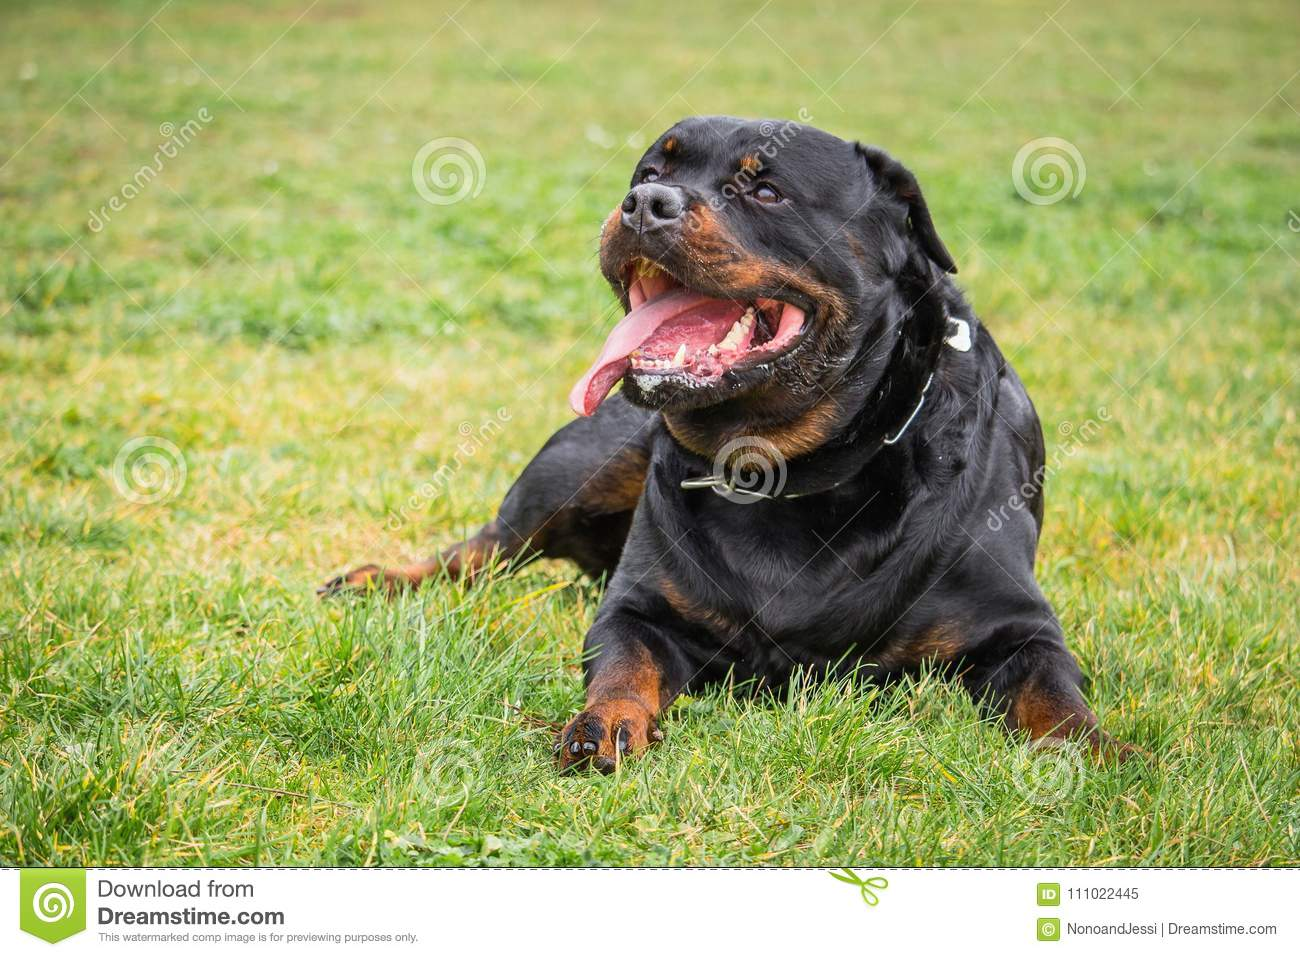 Rottweiler Dog That Watches And Waits For His Master`s Orders While Lying  Down Stock Image - Image of dogs, friend: 111022445